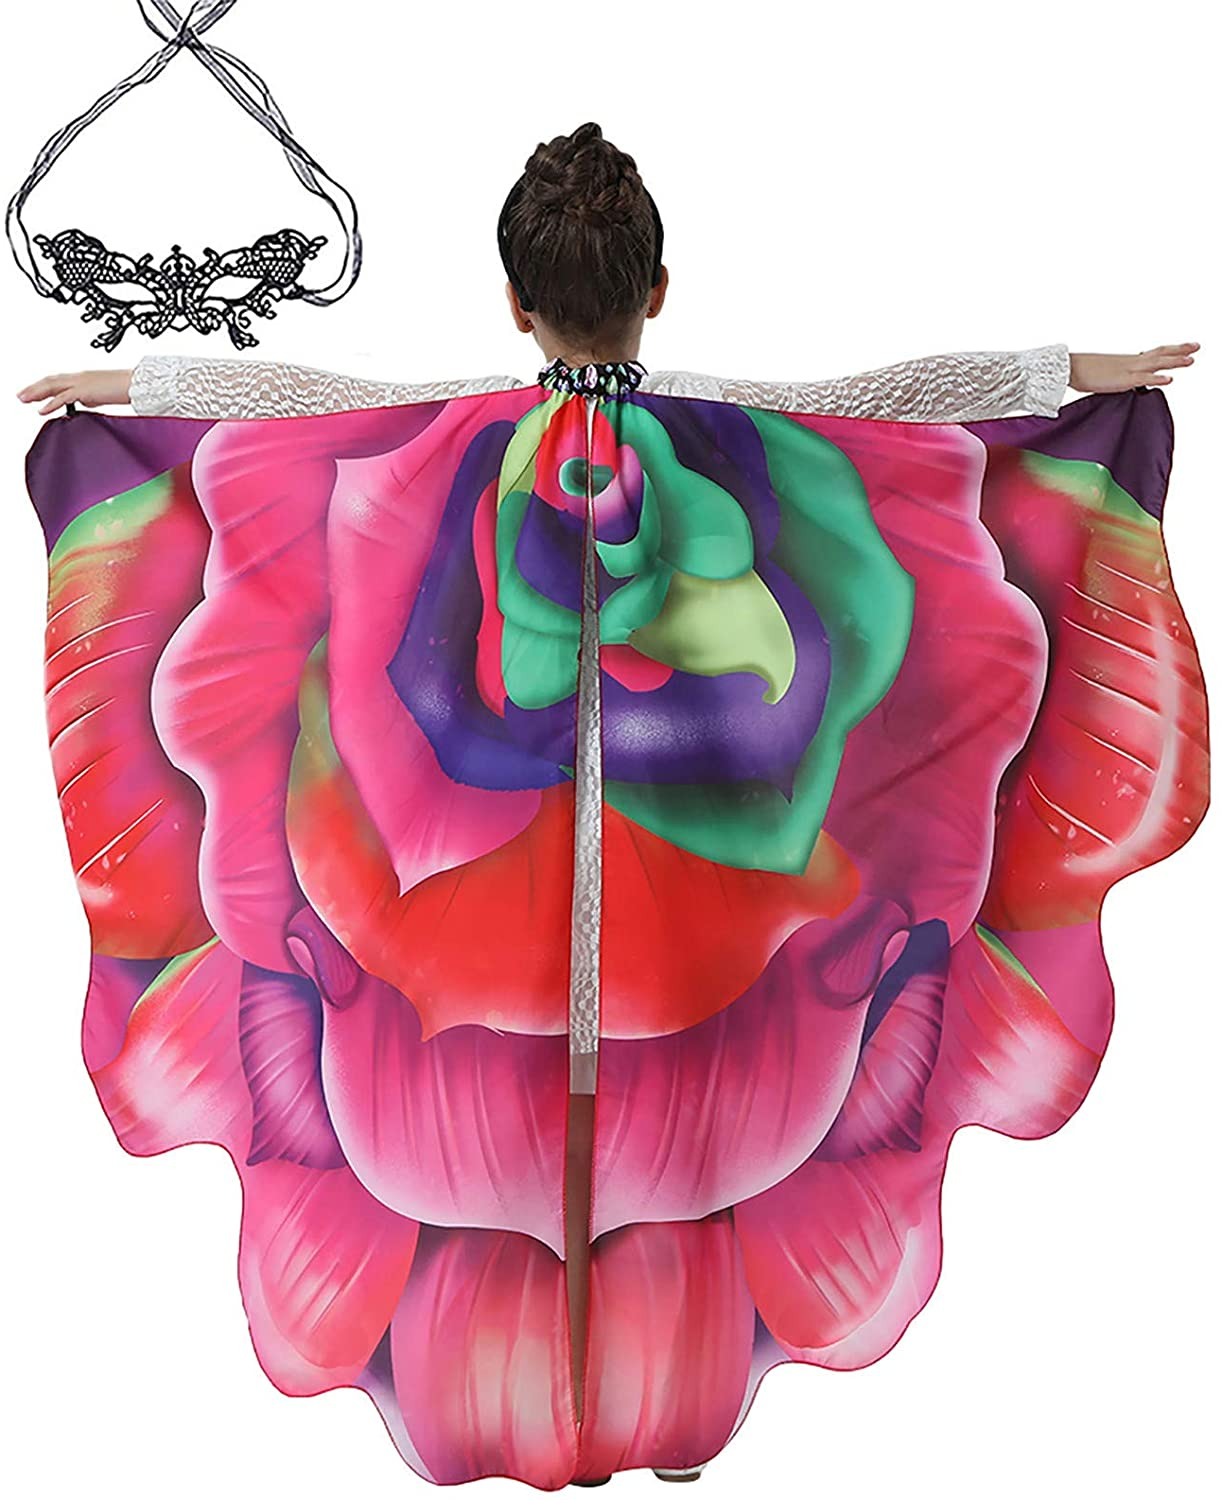 Children's Girls/Teens/Adults Women Halloween Butterfly Shawl Lady Cape Costume Accessory With Lace Facemasks